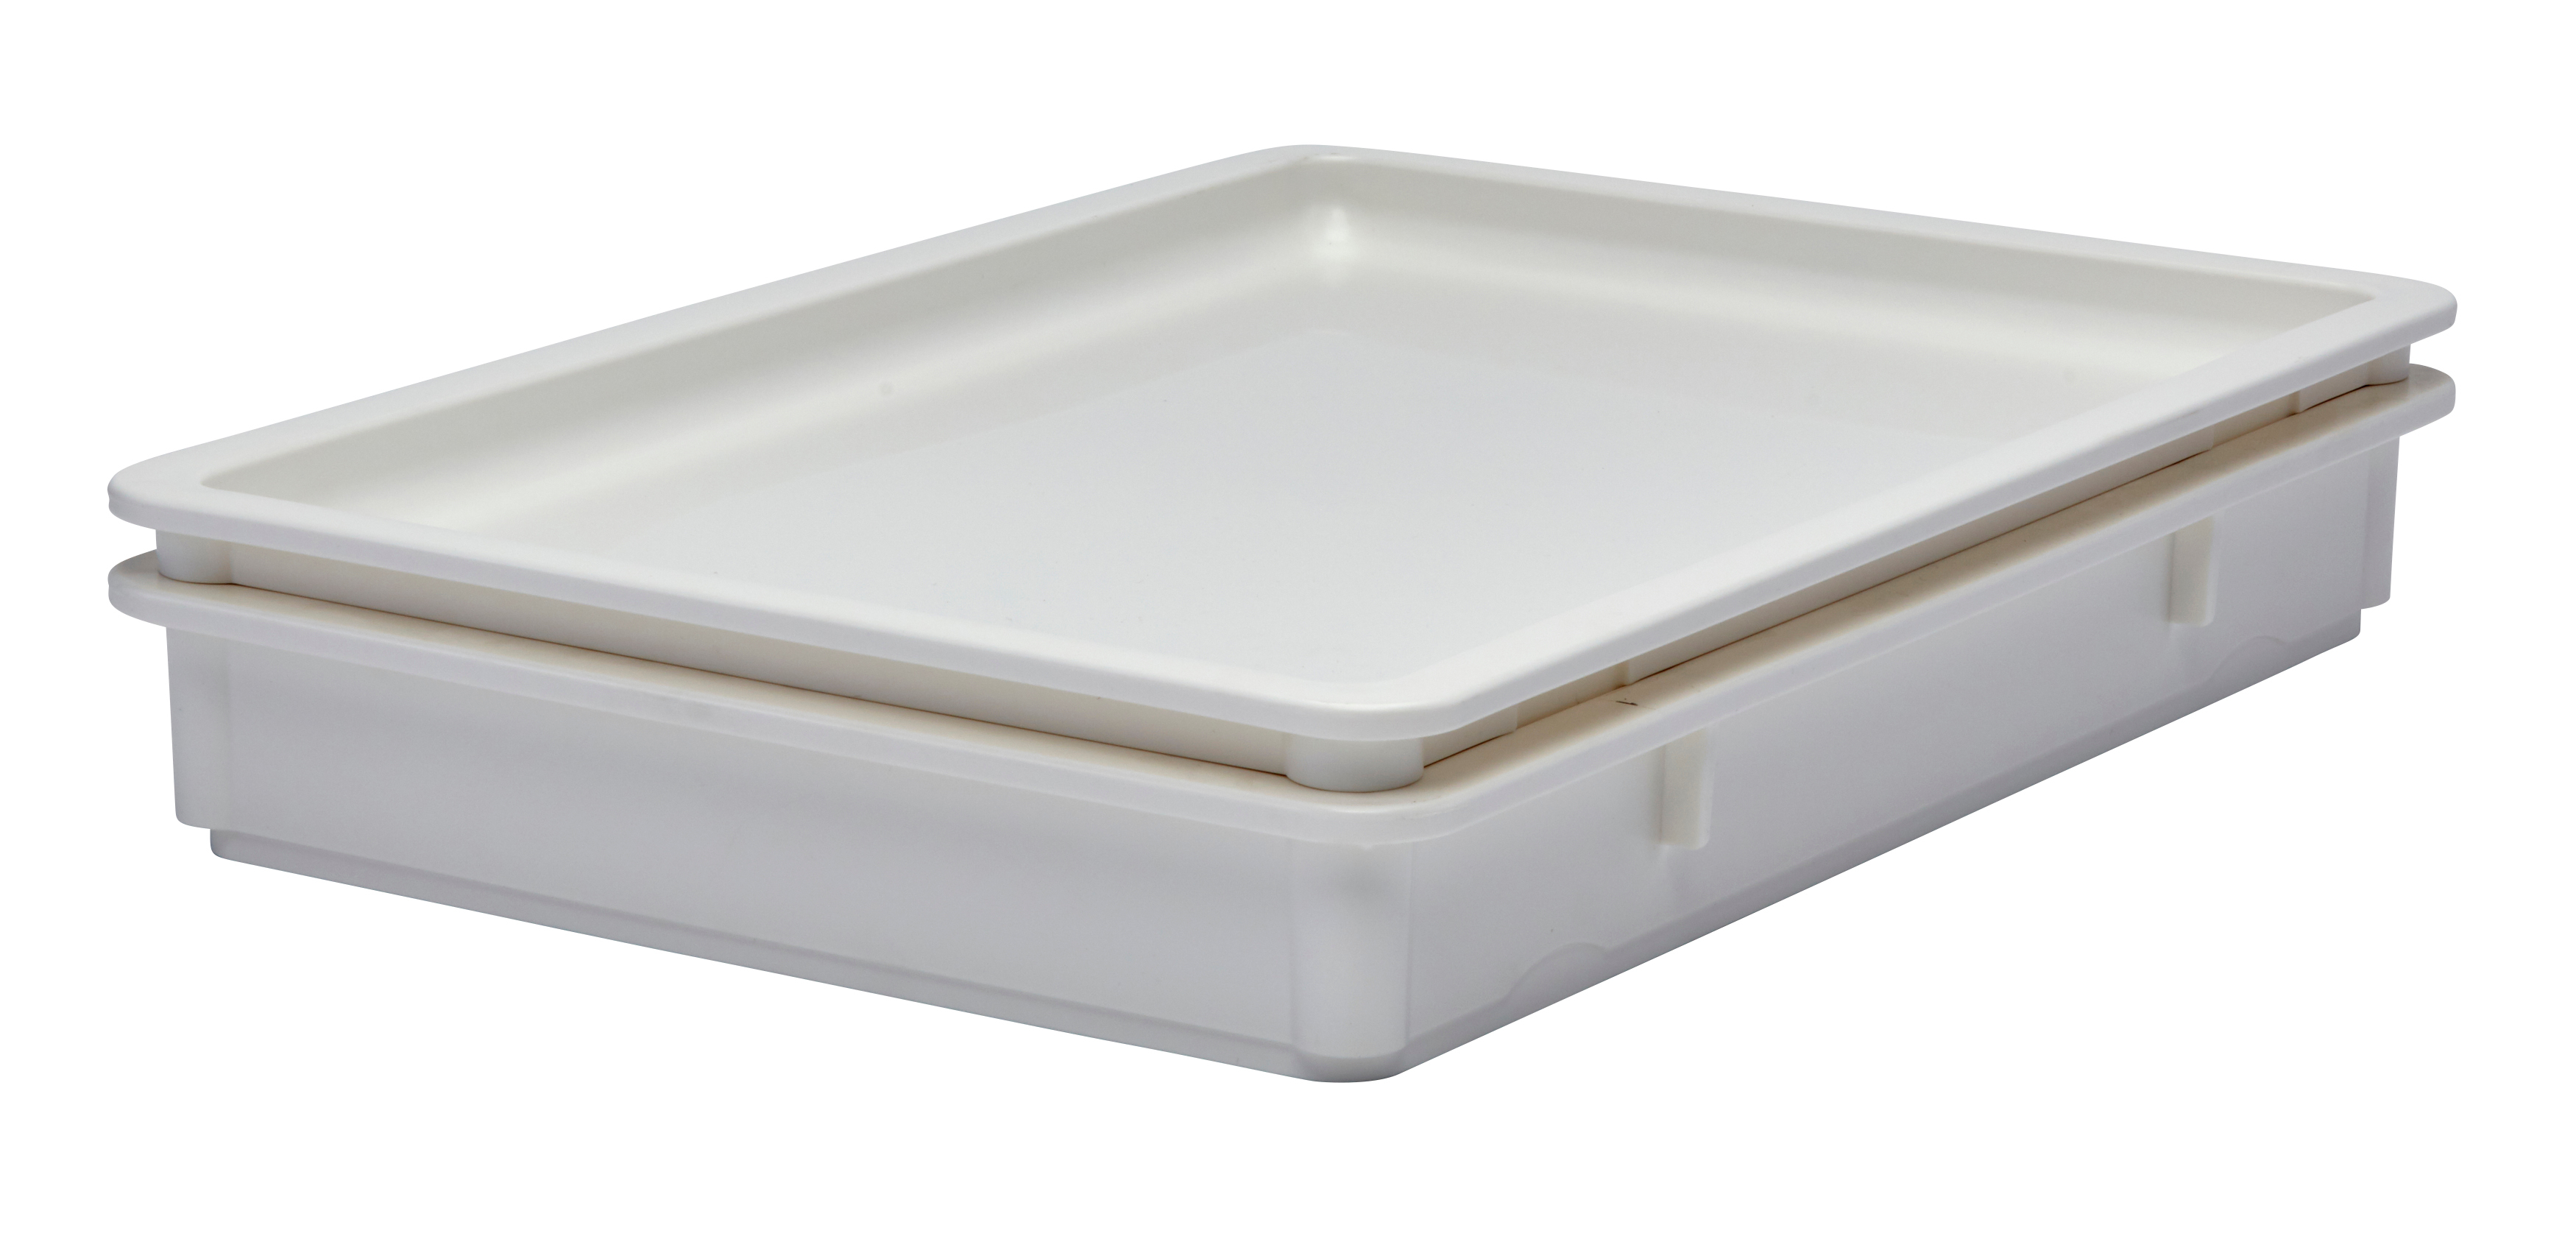 Cambro DBC1826P148 food/beverage storage container